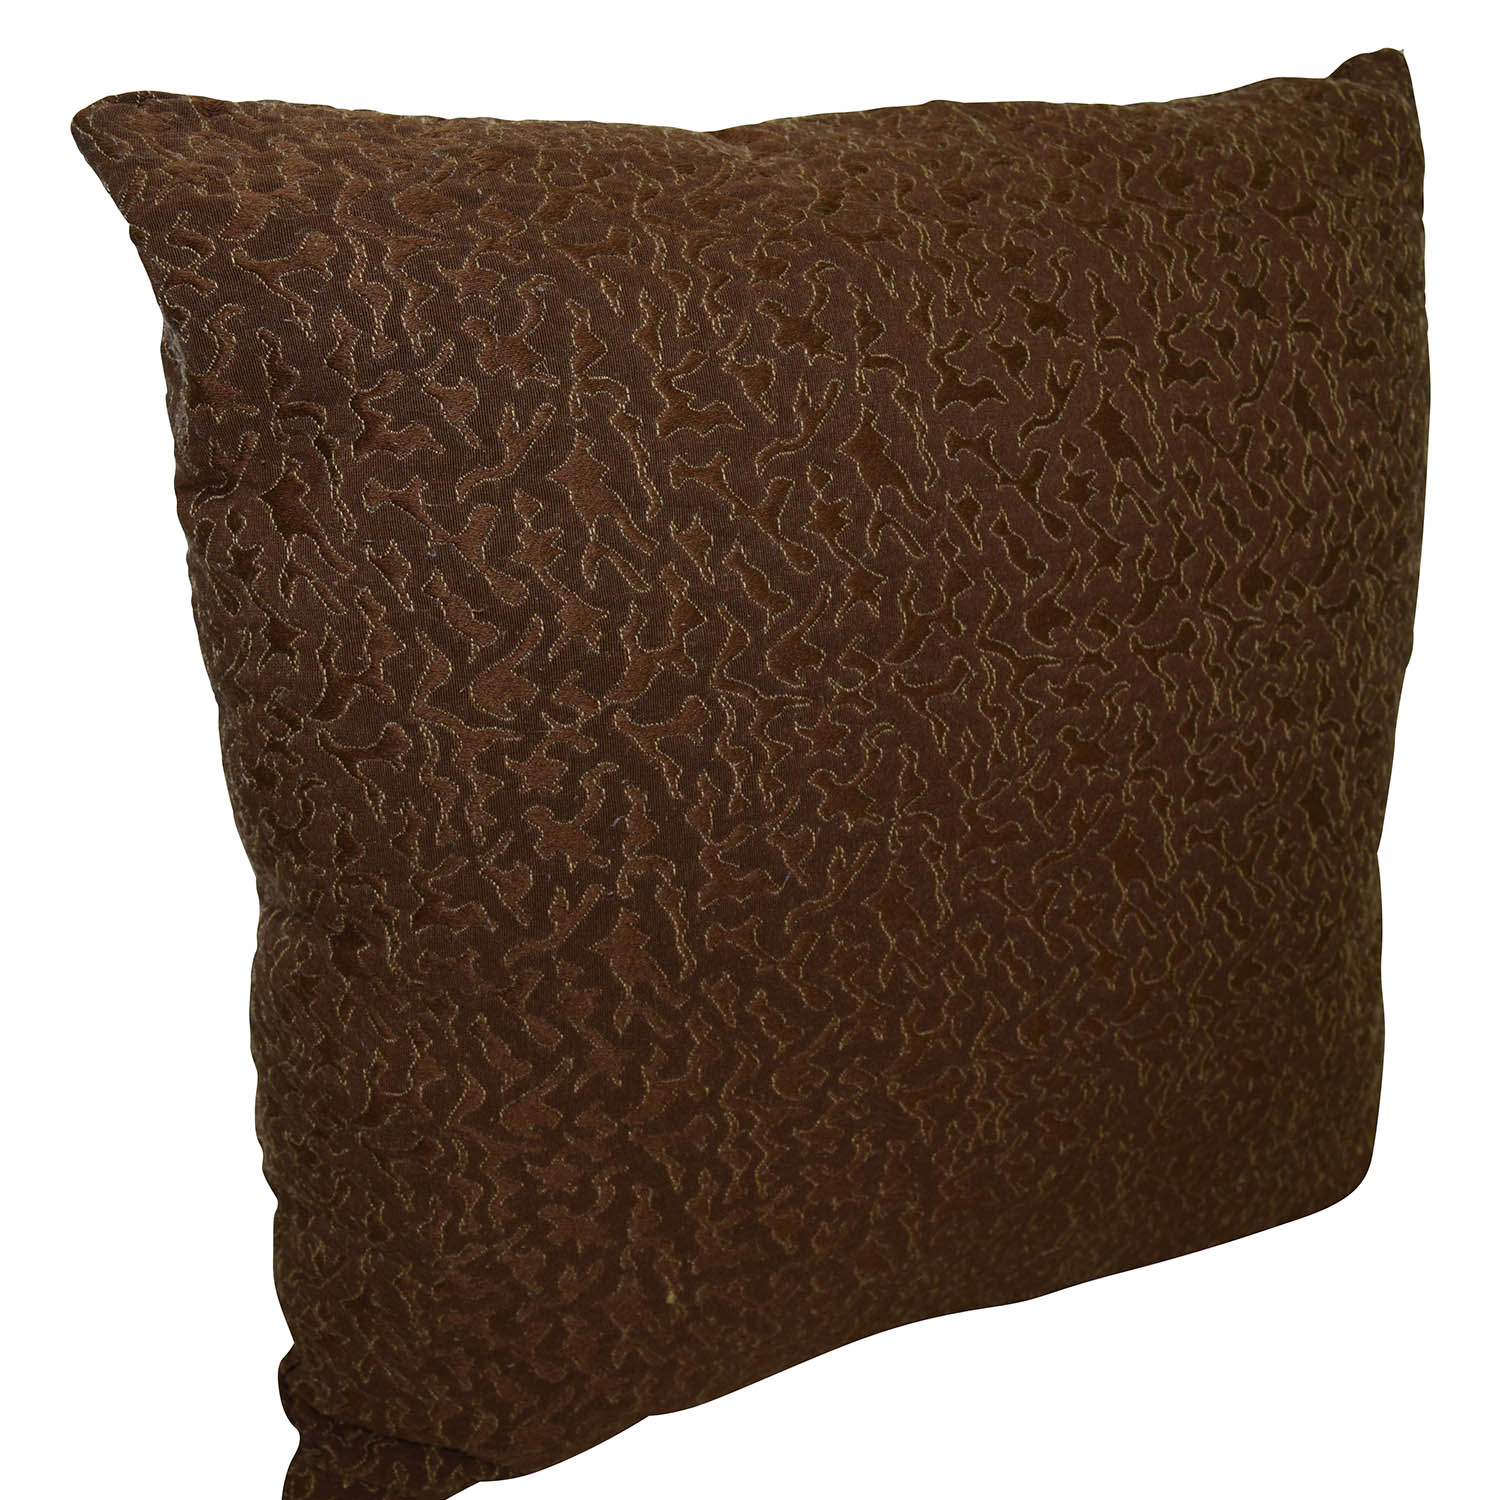 Two-toned Brown Toss Pillow